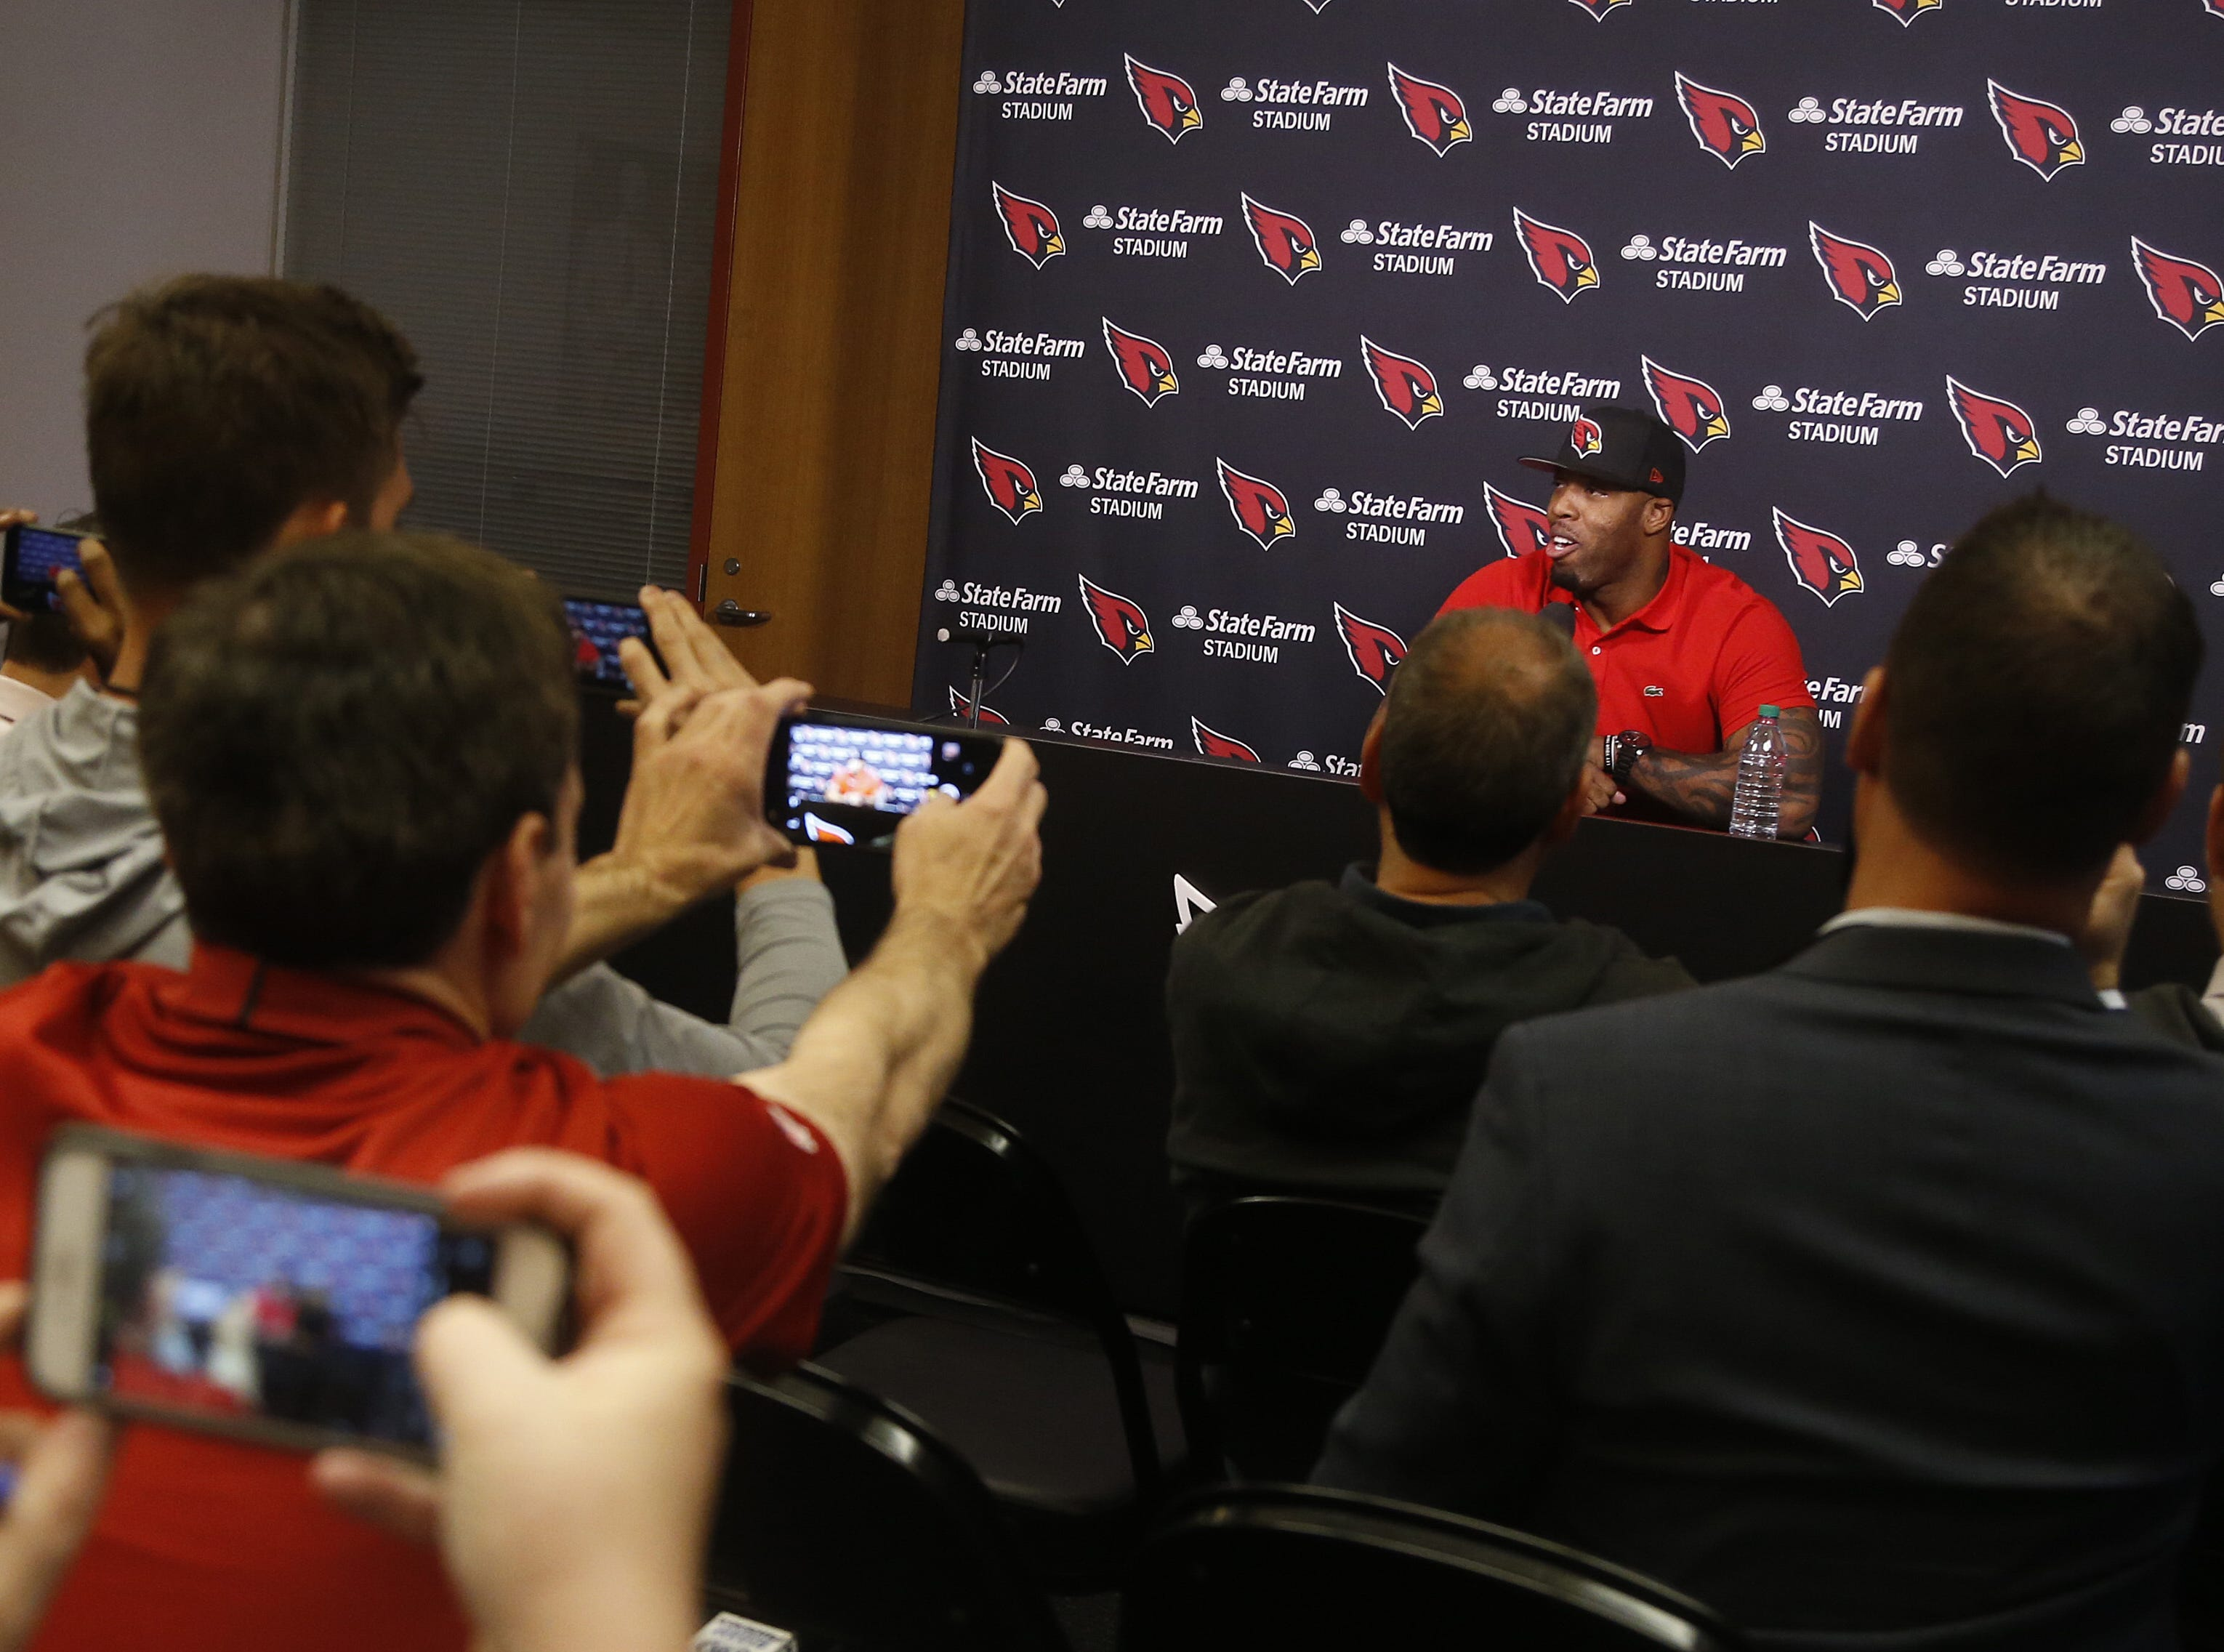 Reporters take pictures of Terrell Suggs as he speaks with the media during his introductory press conference at the Arizona Cardinals Training Facility in Tempe, Ariz. on March 14, 2019.